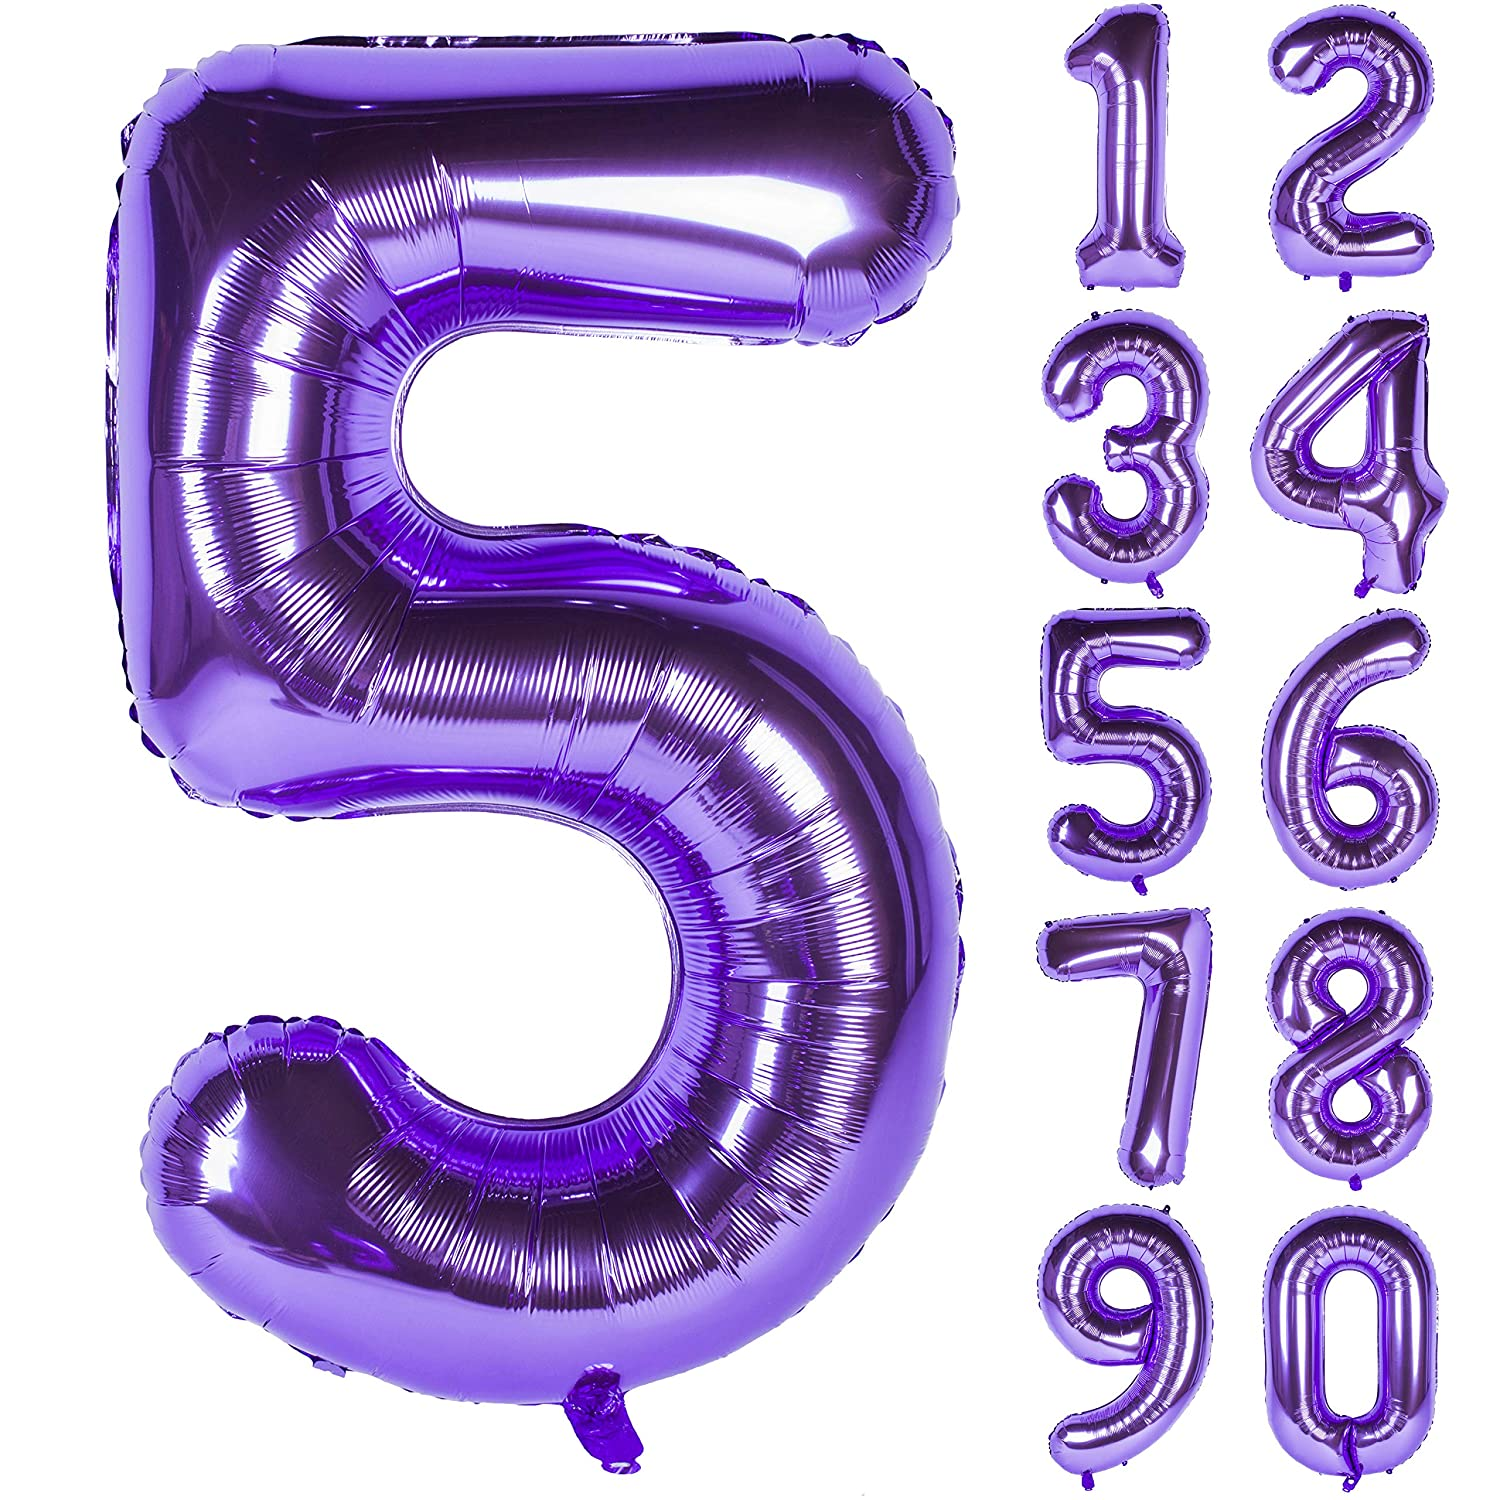 New 40 Inch Purple Digit Helium Foil Birthday Party Balloons Number 9